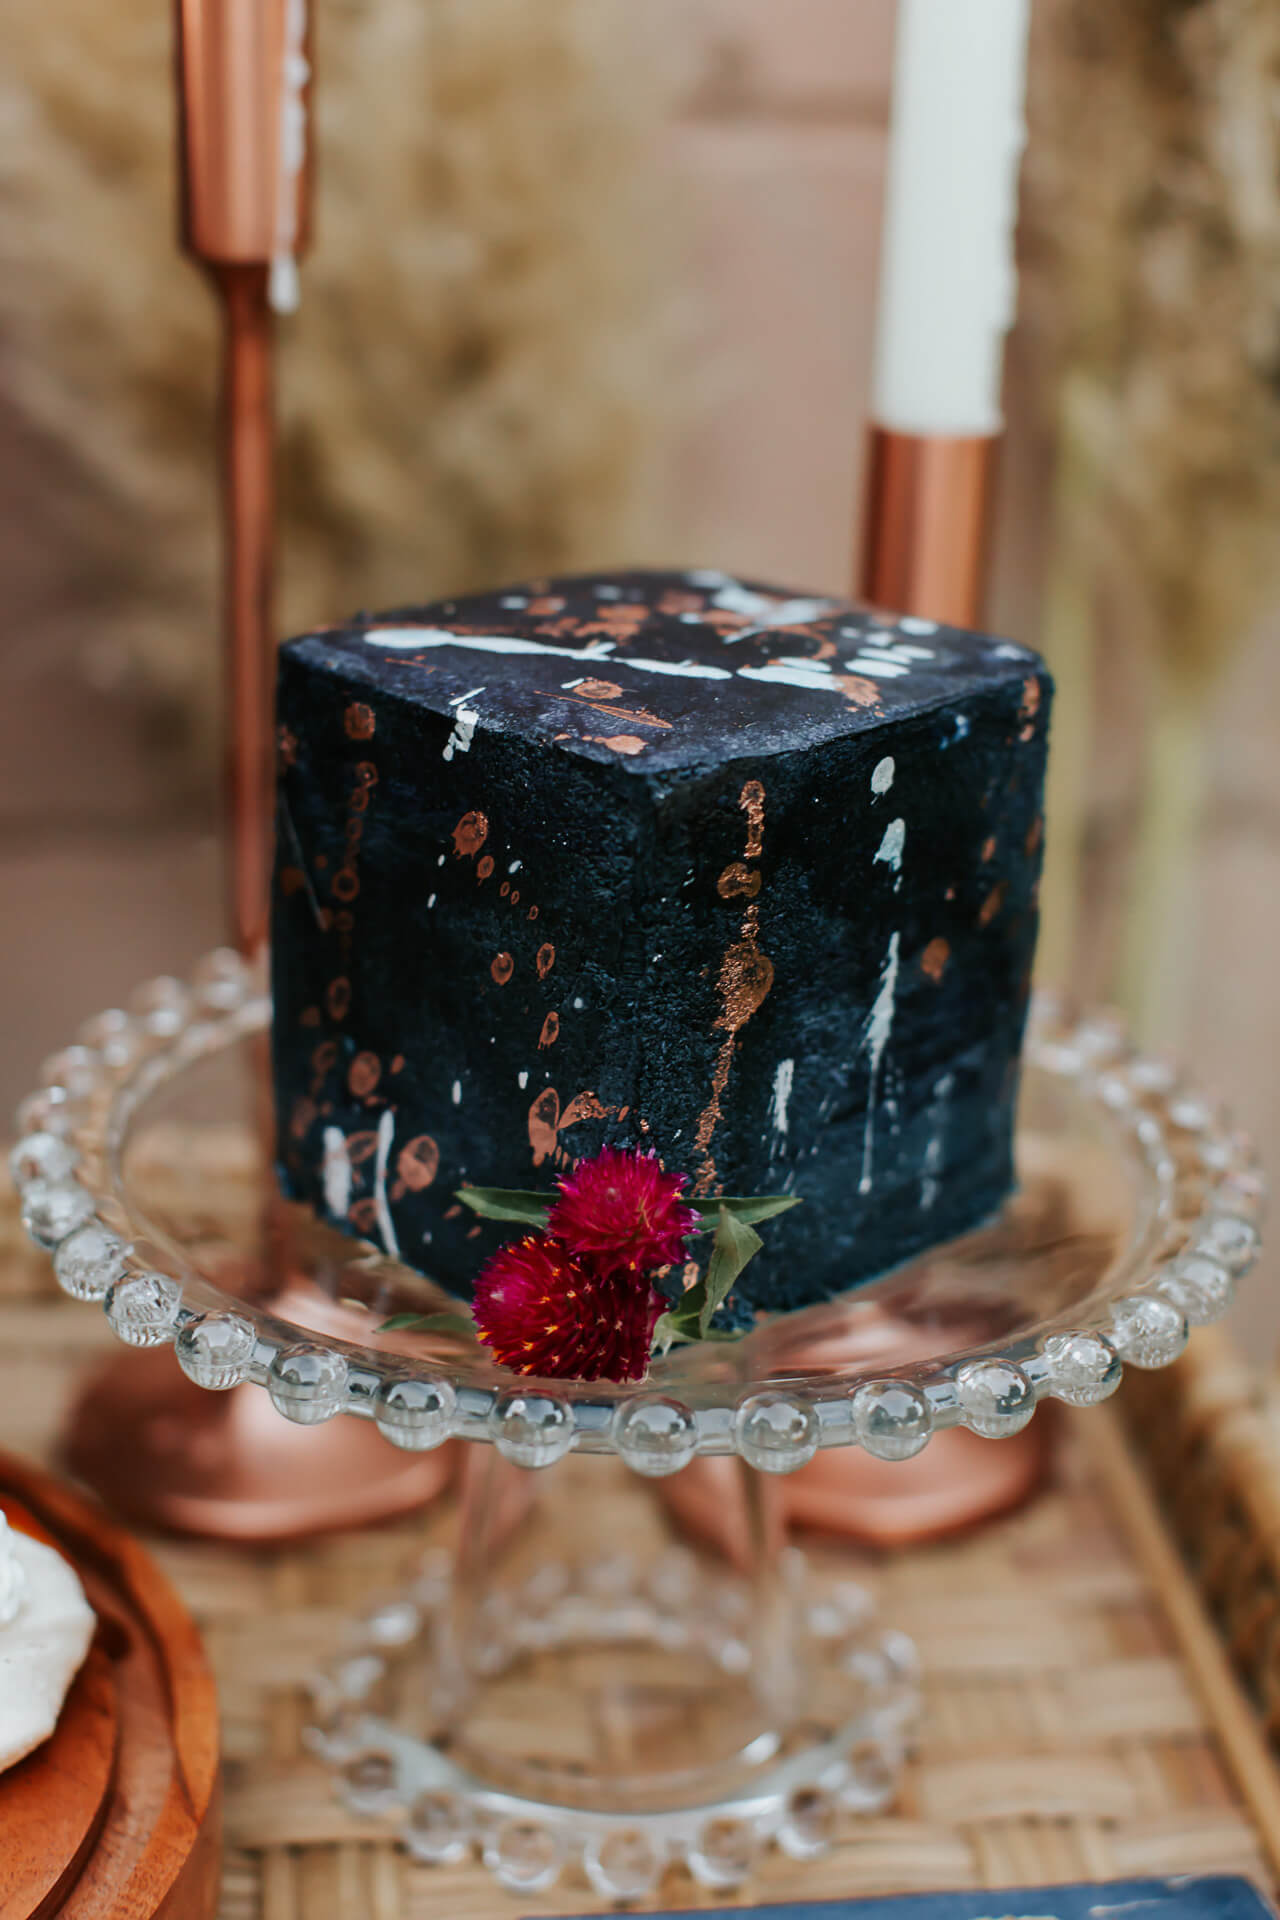 a stylish gender reveal cake with navy paint splatters - M Loves M @marmar